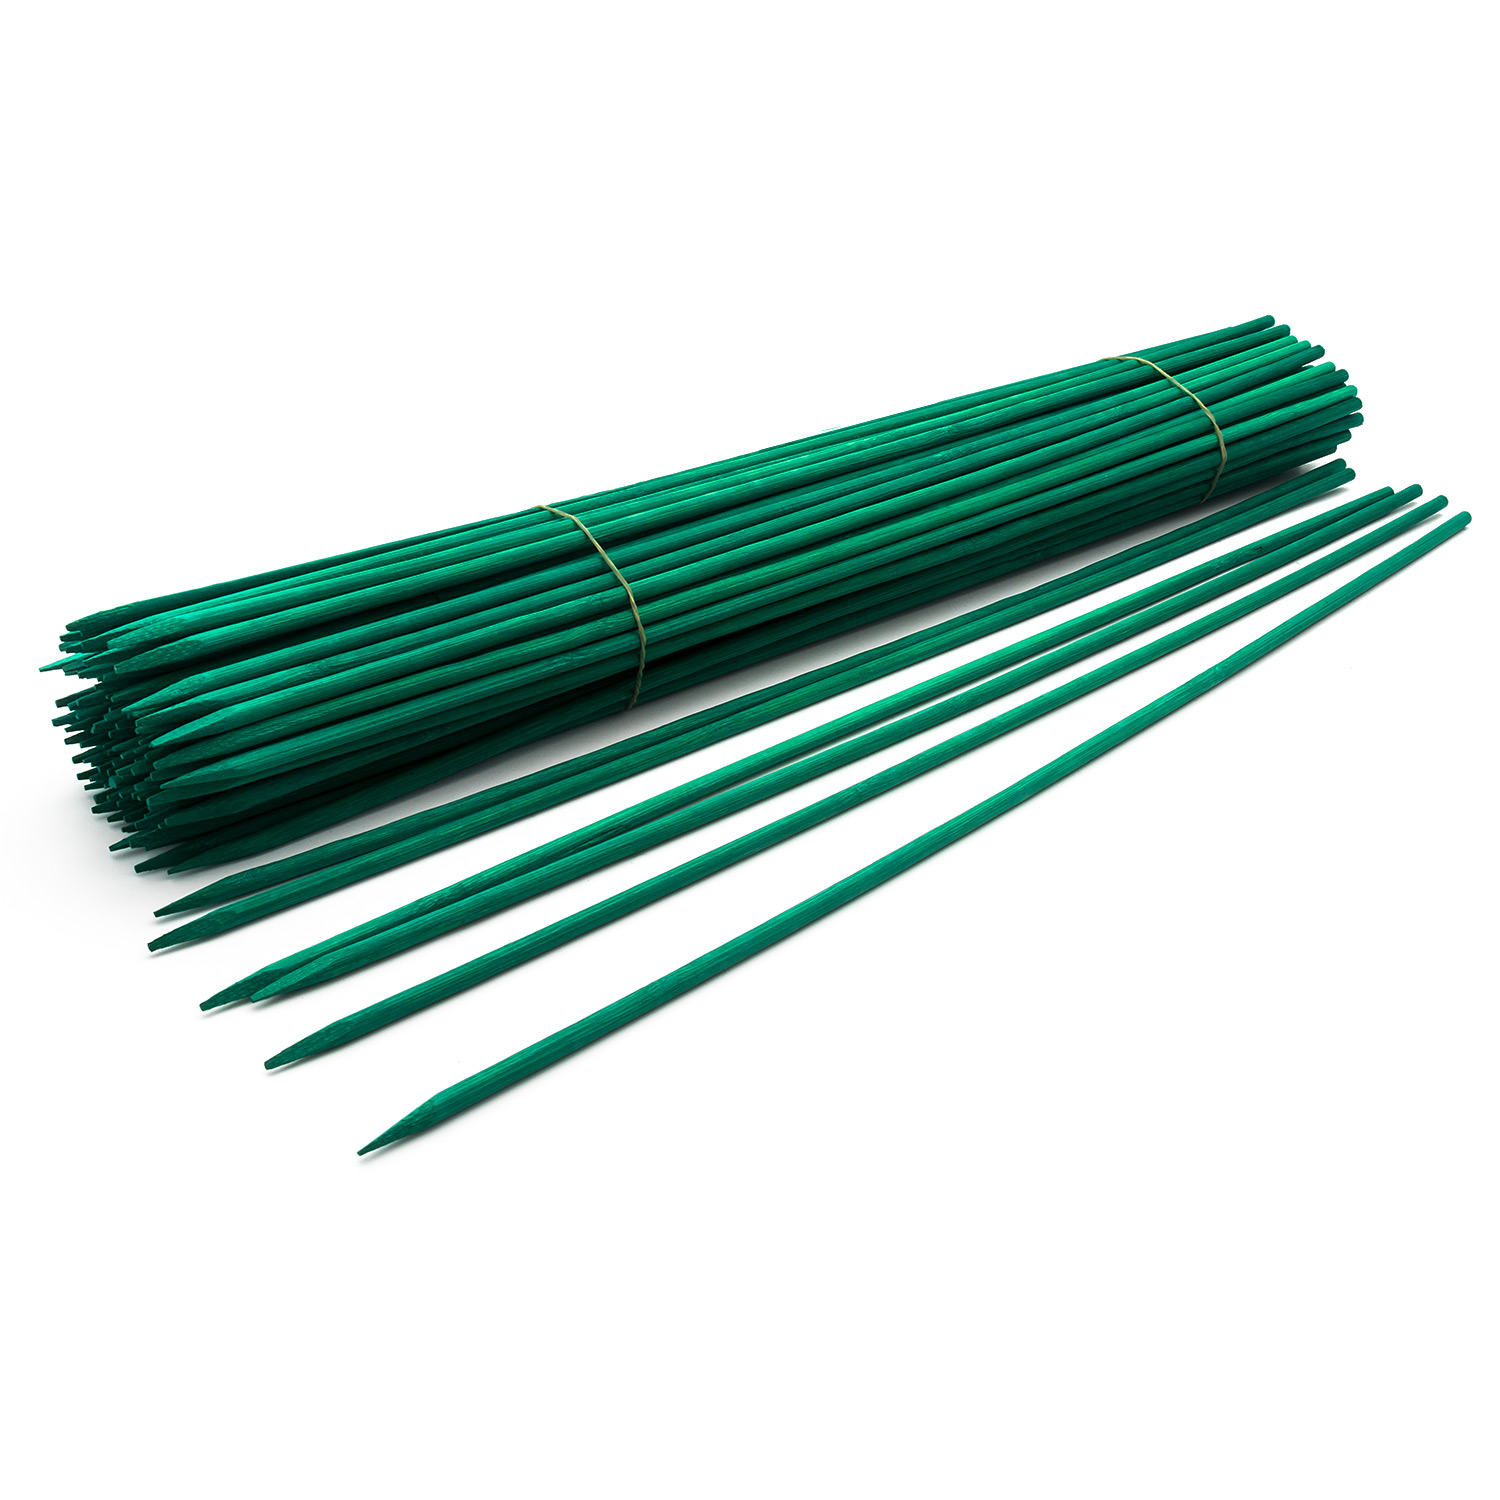 image1-green-long-100pack